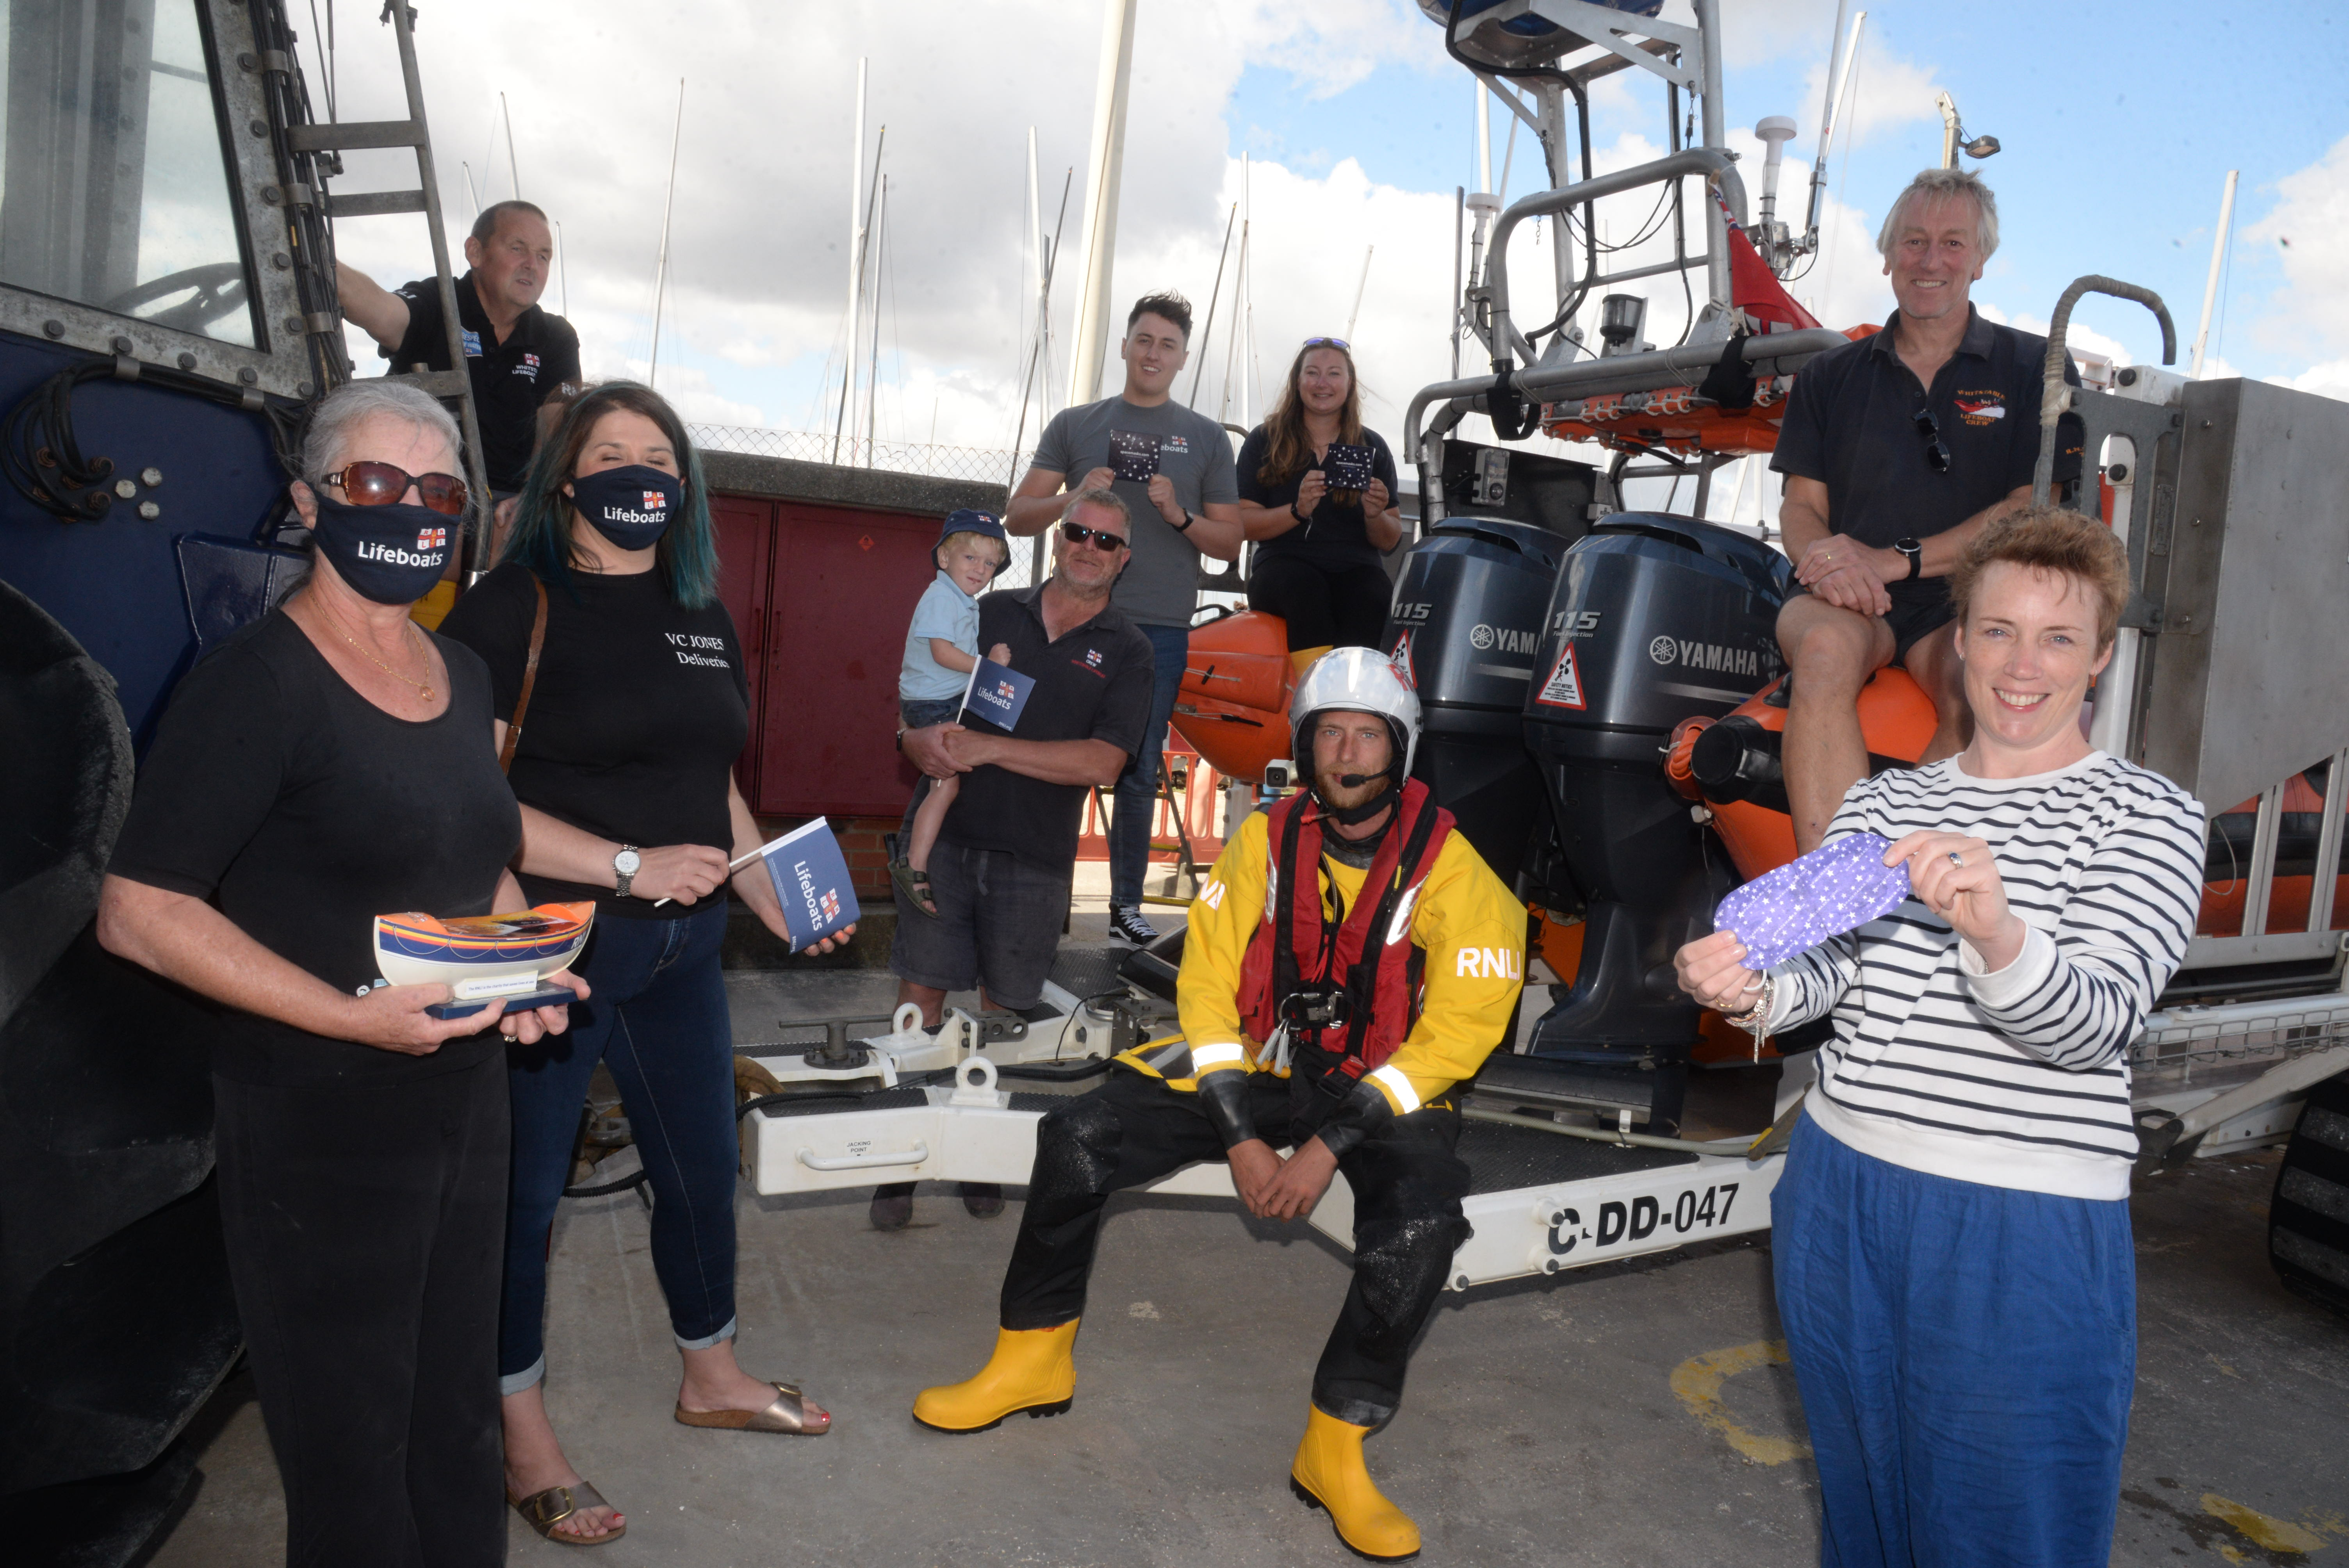 Madeleine Jones and Heather Scott of V.C. Jones with Harriet Inglis of Spacemasks with members of the Whitstable lifeboat station on Sunday.